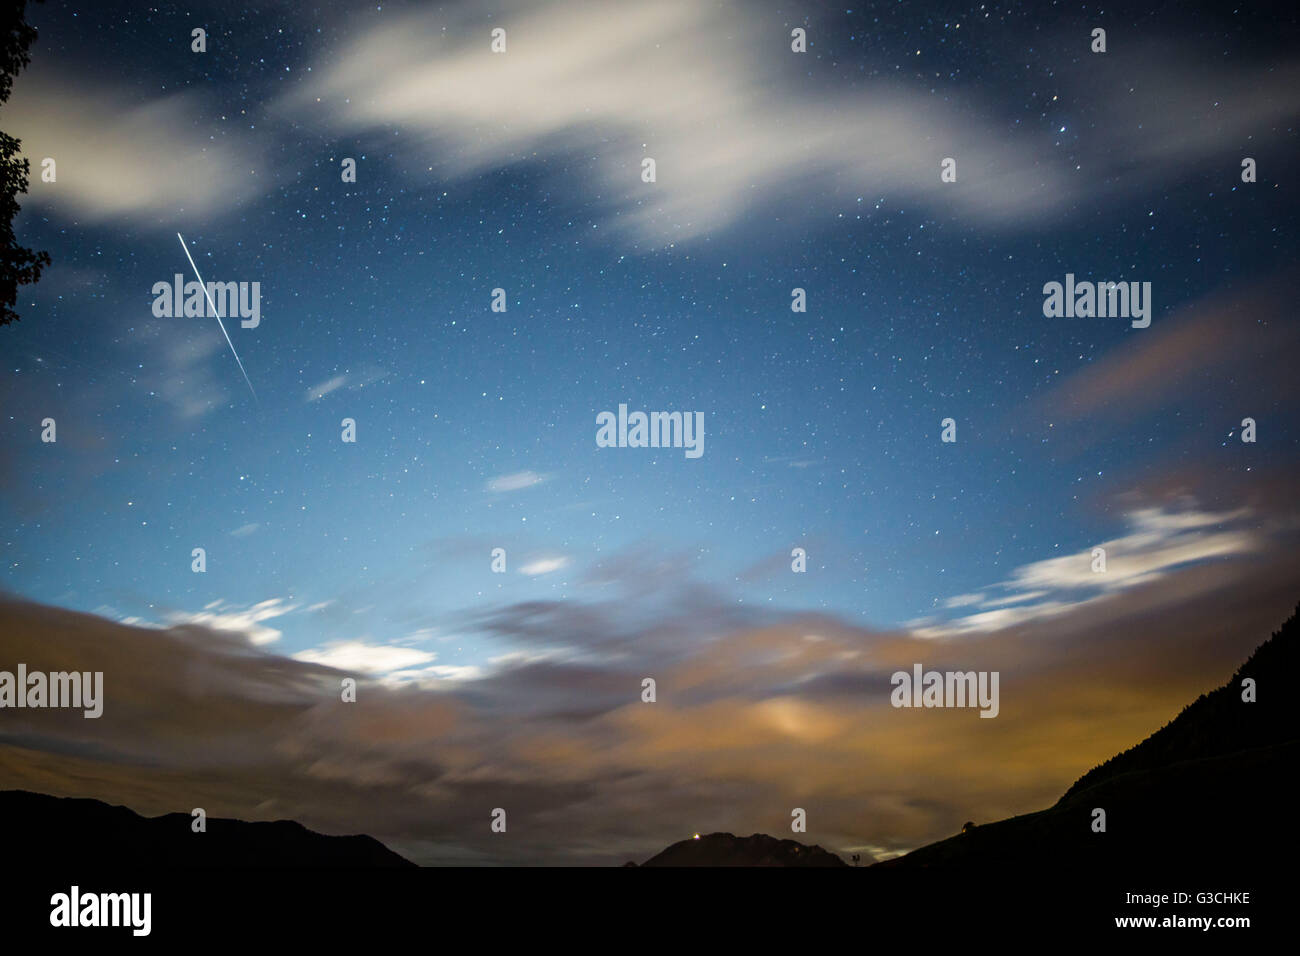 Long-exposure photography shooting star and clouds - Stock Image